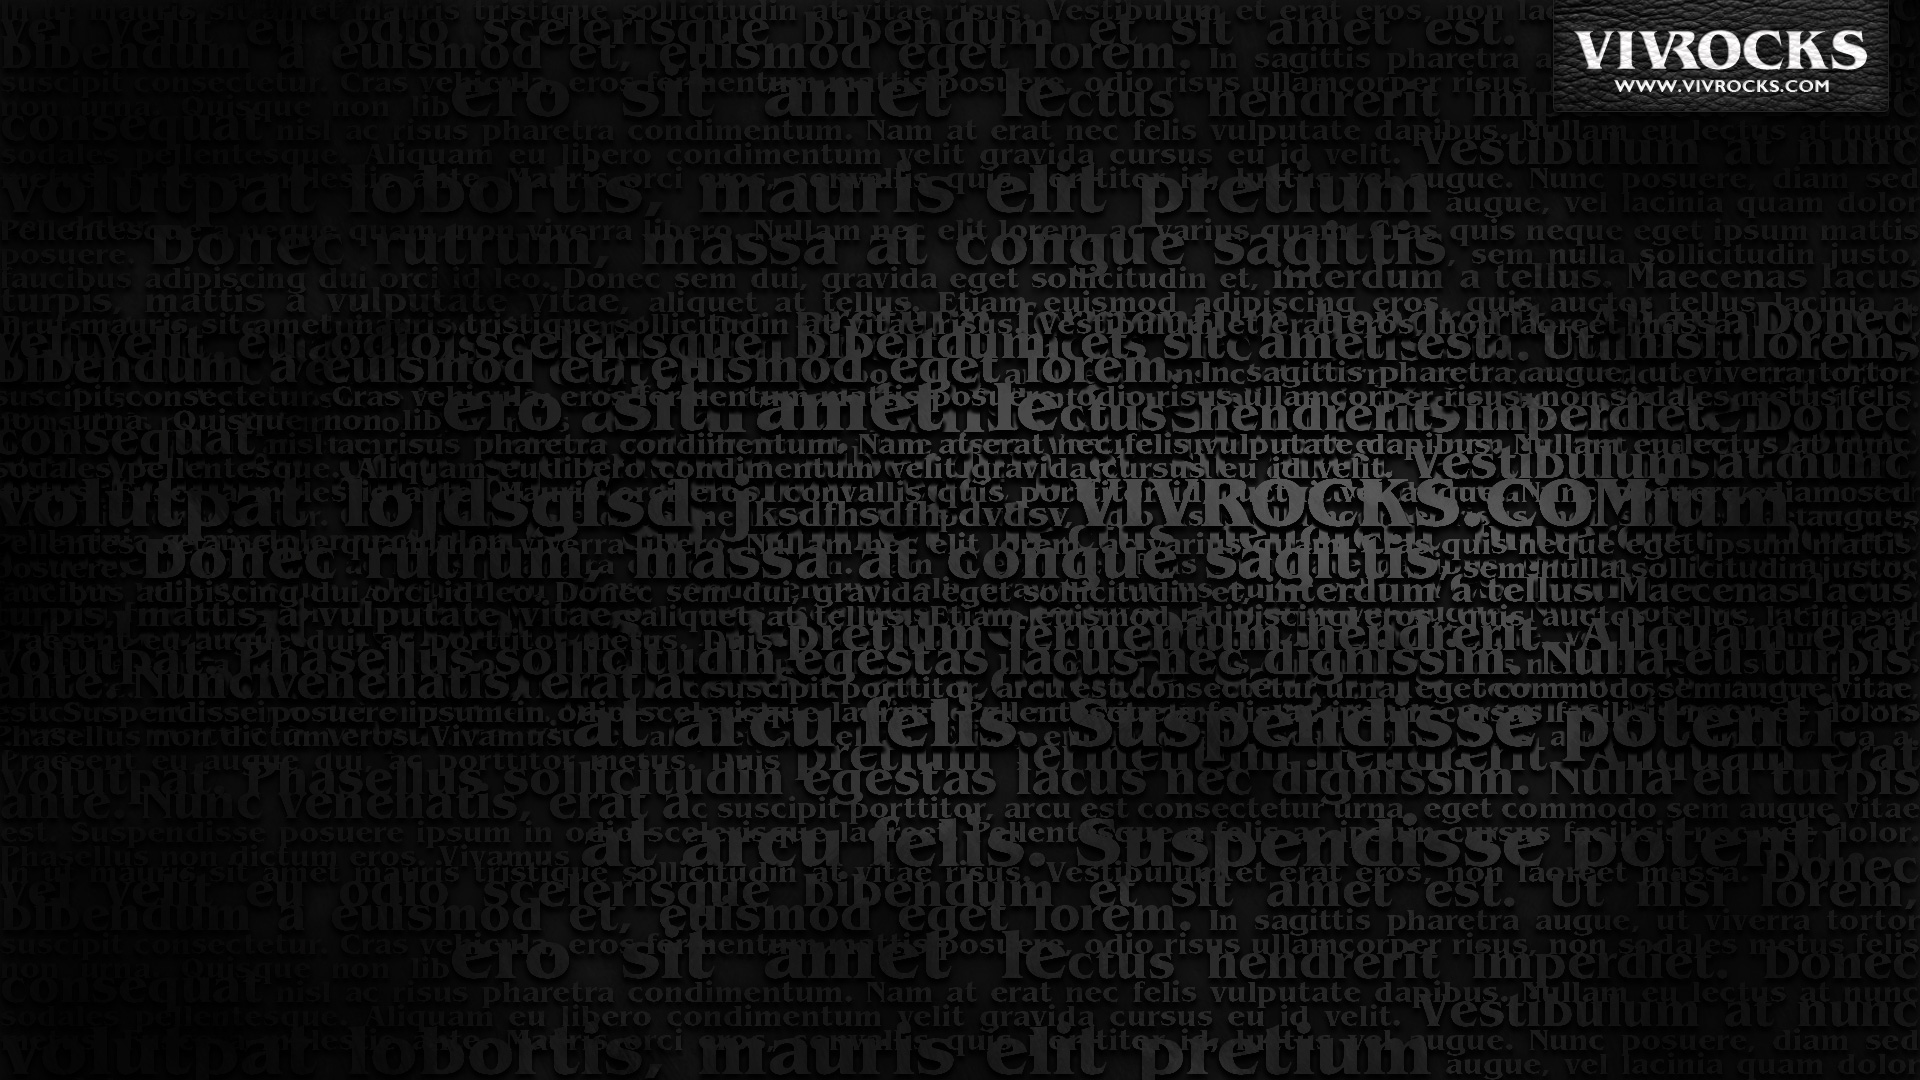 wallpaper, matrix, black, logo, wow, vivrocks, keyword